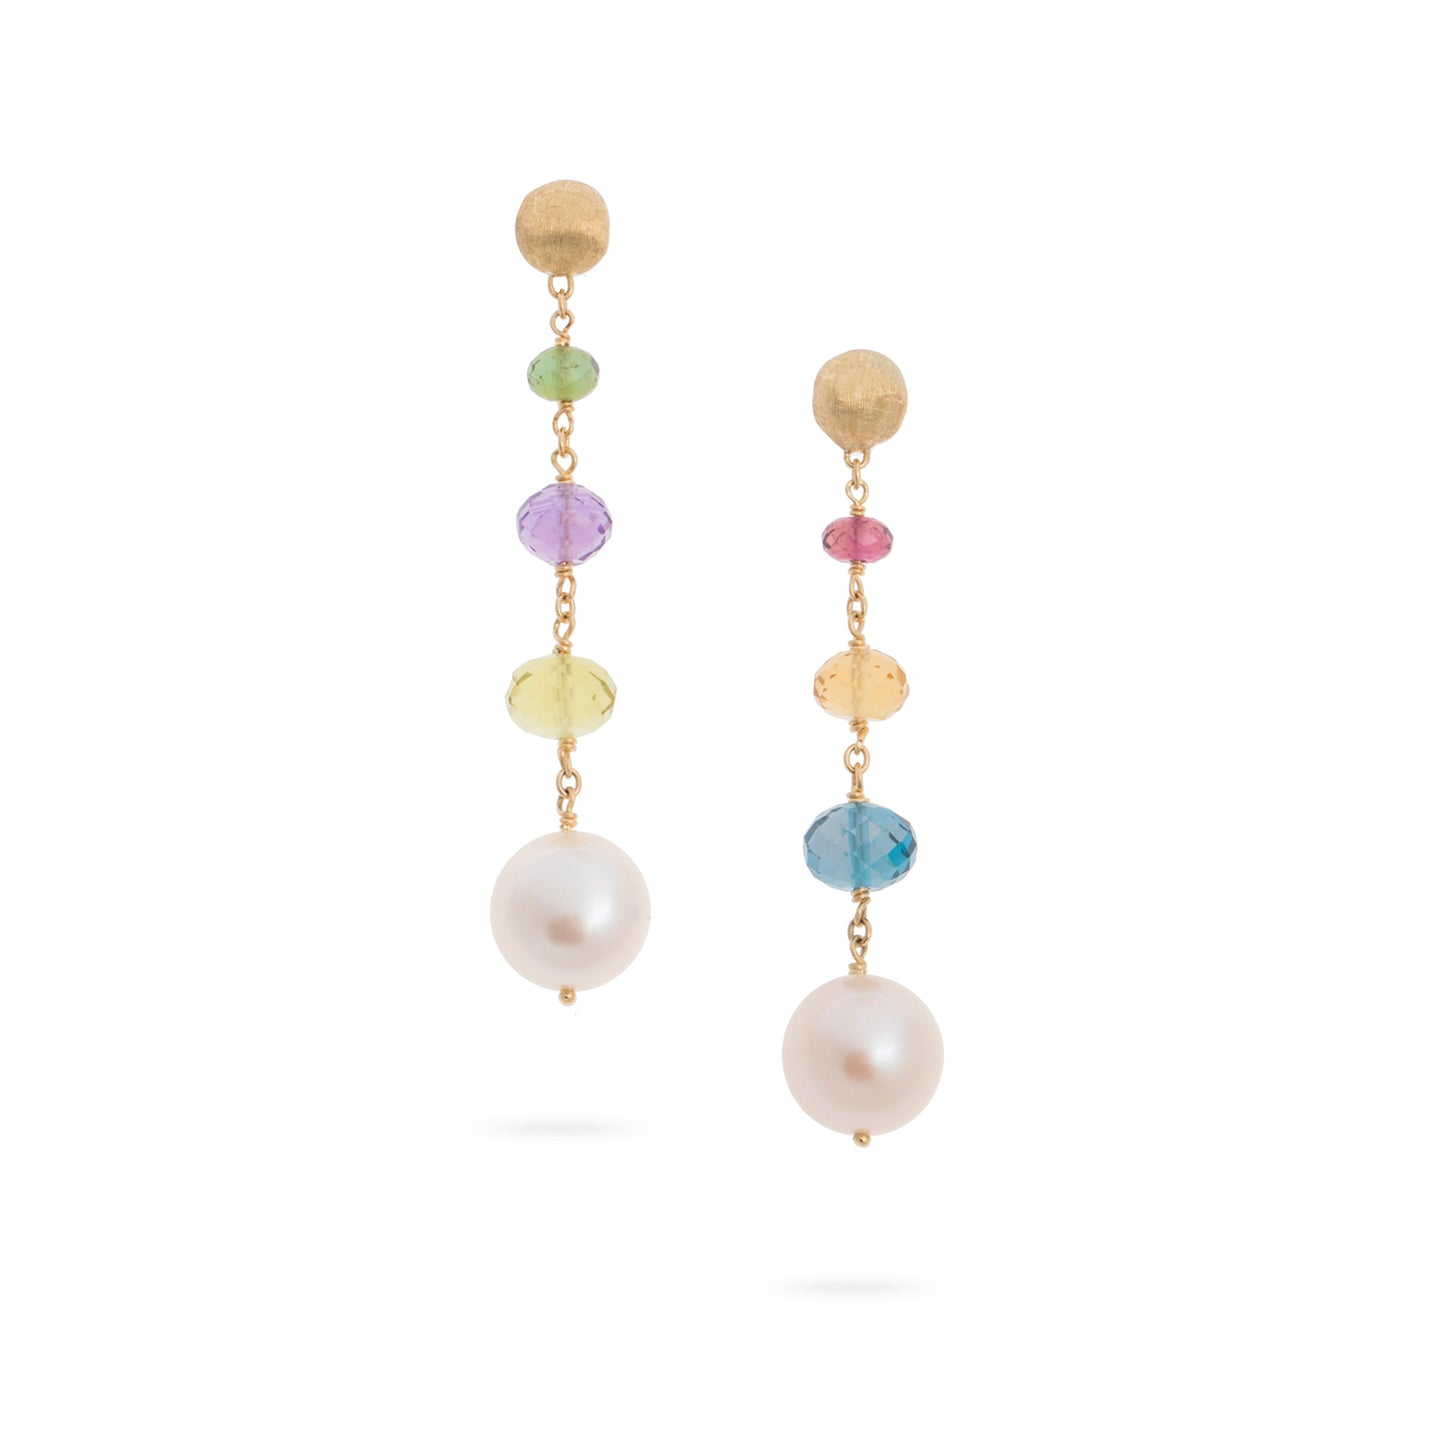 Marco Bicego Africa 18K Yellow Gold Pearl and Mixed Gemstone Drop Earrings